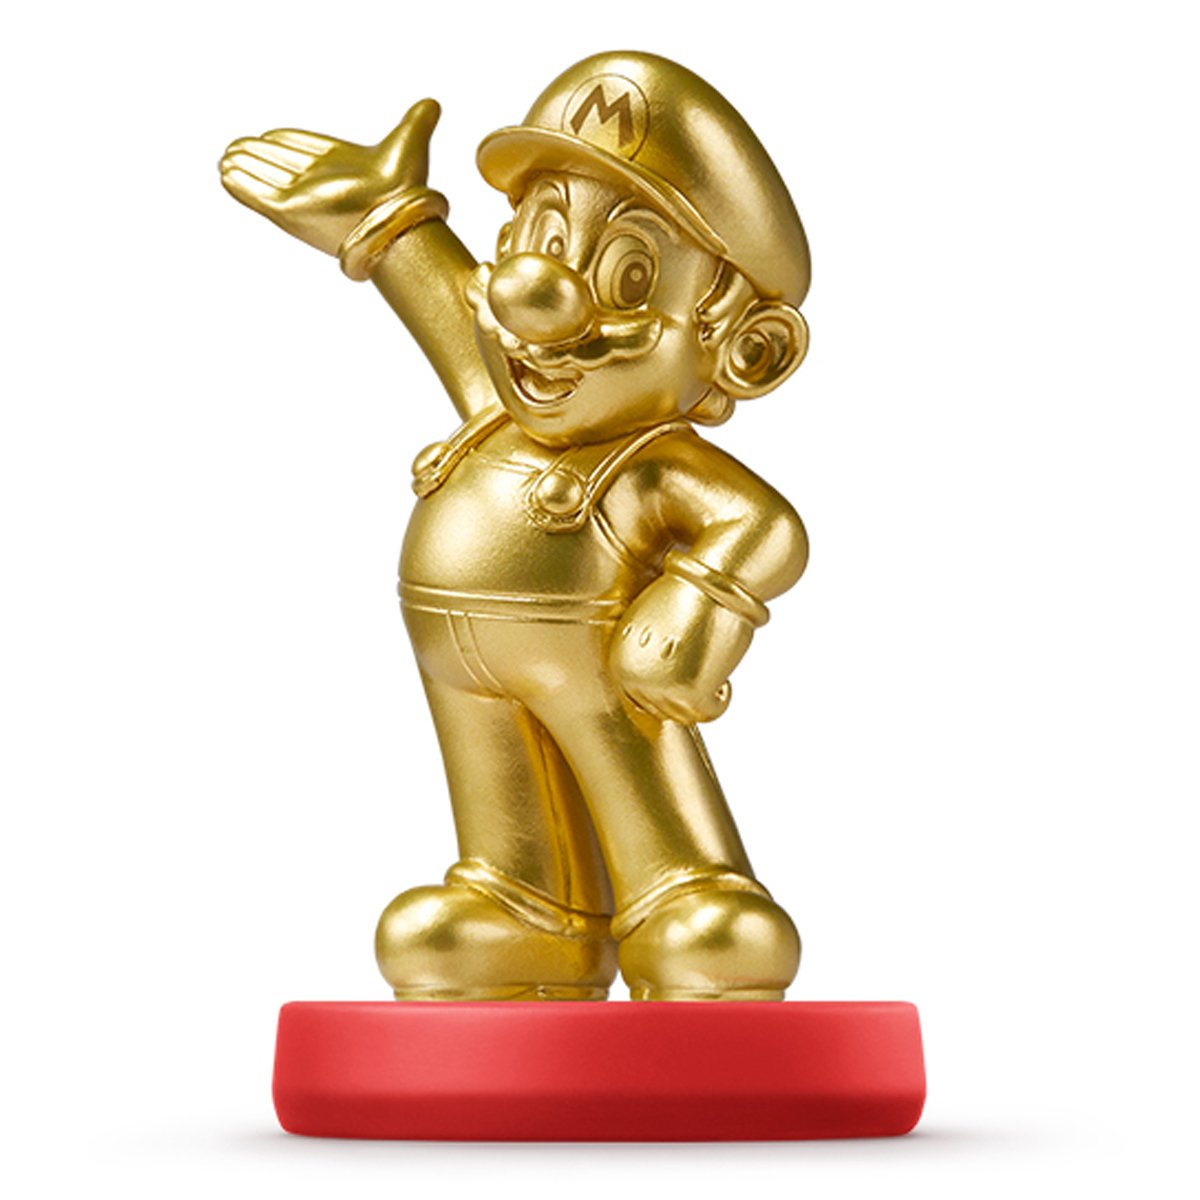 NEW Amiibo Gold Mario Japan ver. Super Smash Bros Wii U 3DS Import